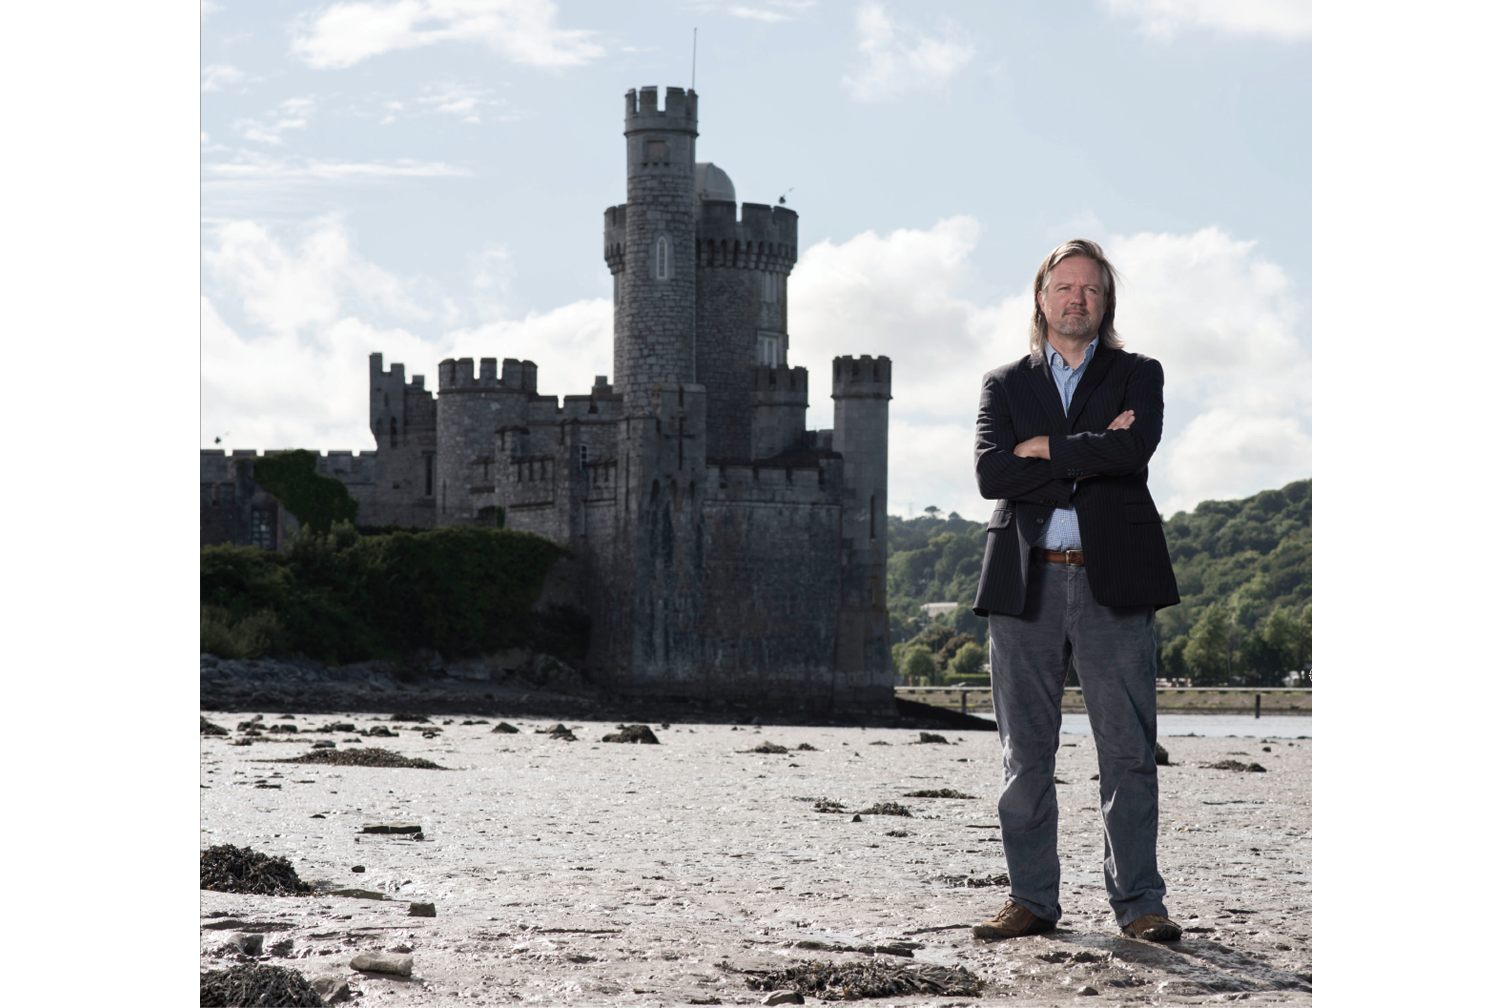 Nicholas Allen, Burns Scholar, Spring 2010, photographed at Blackrock Castle on the banks of the River Lee in County Cork.